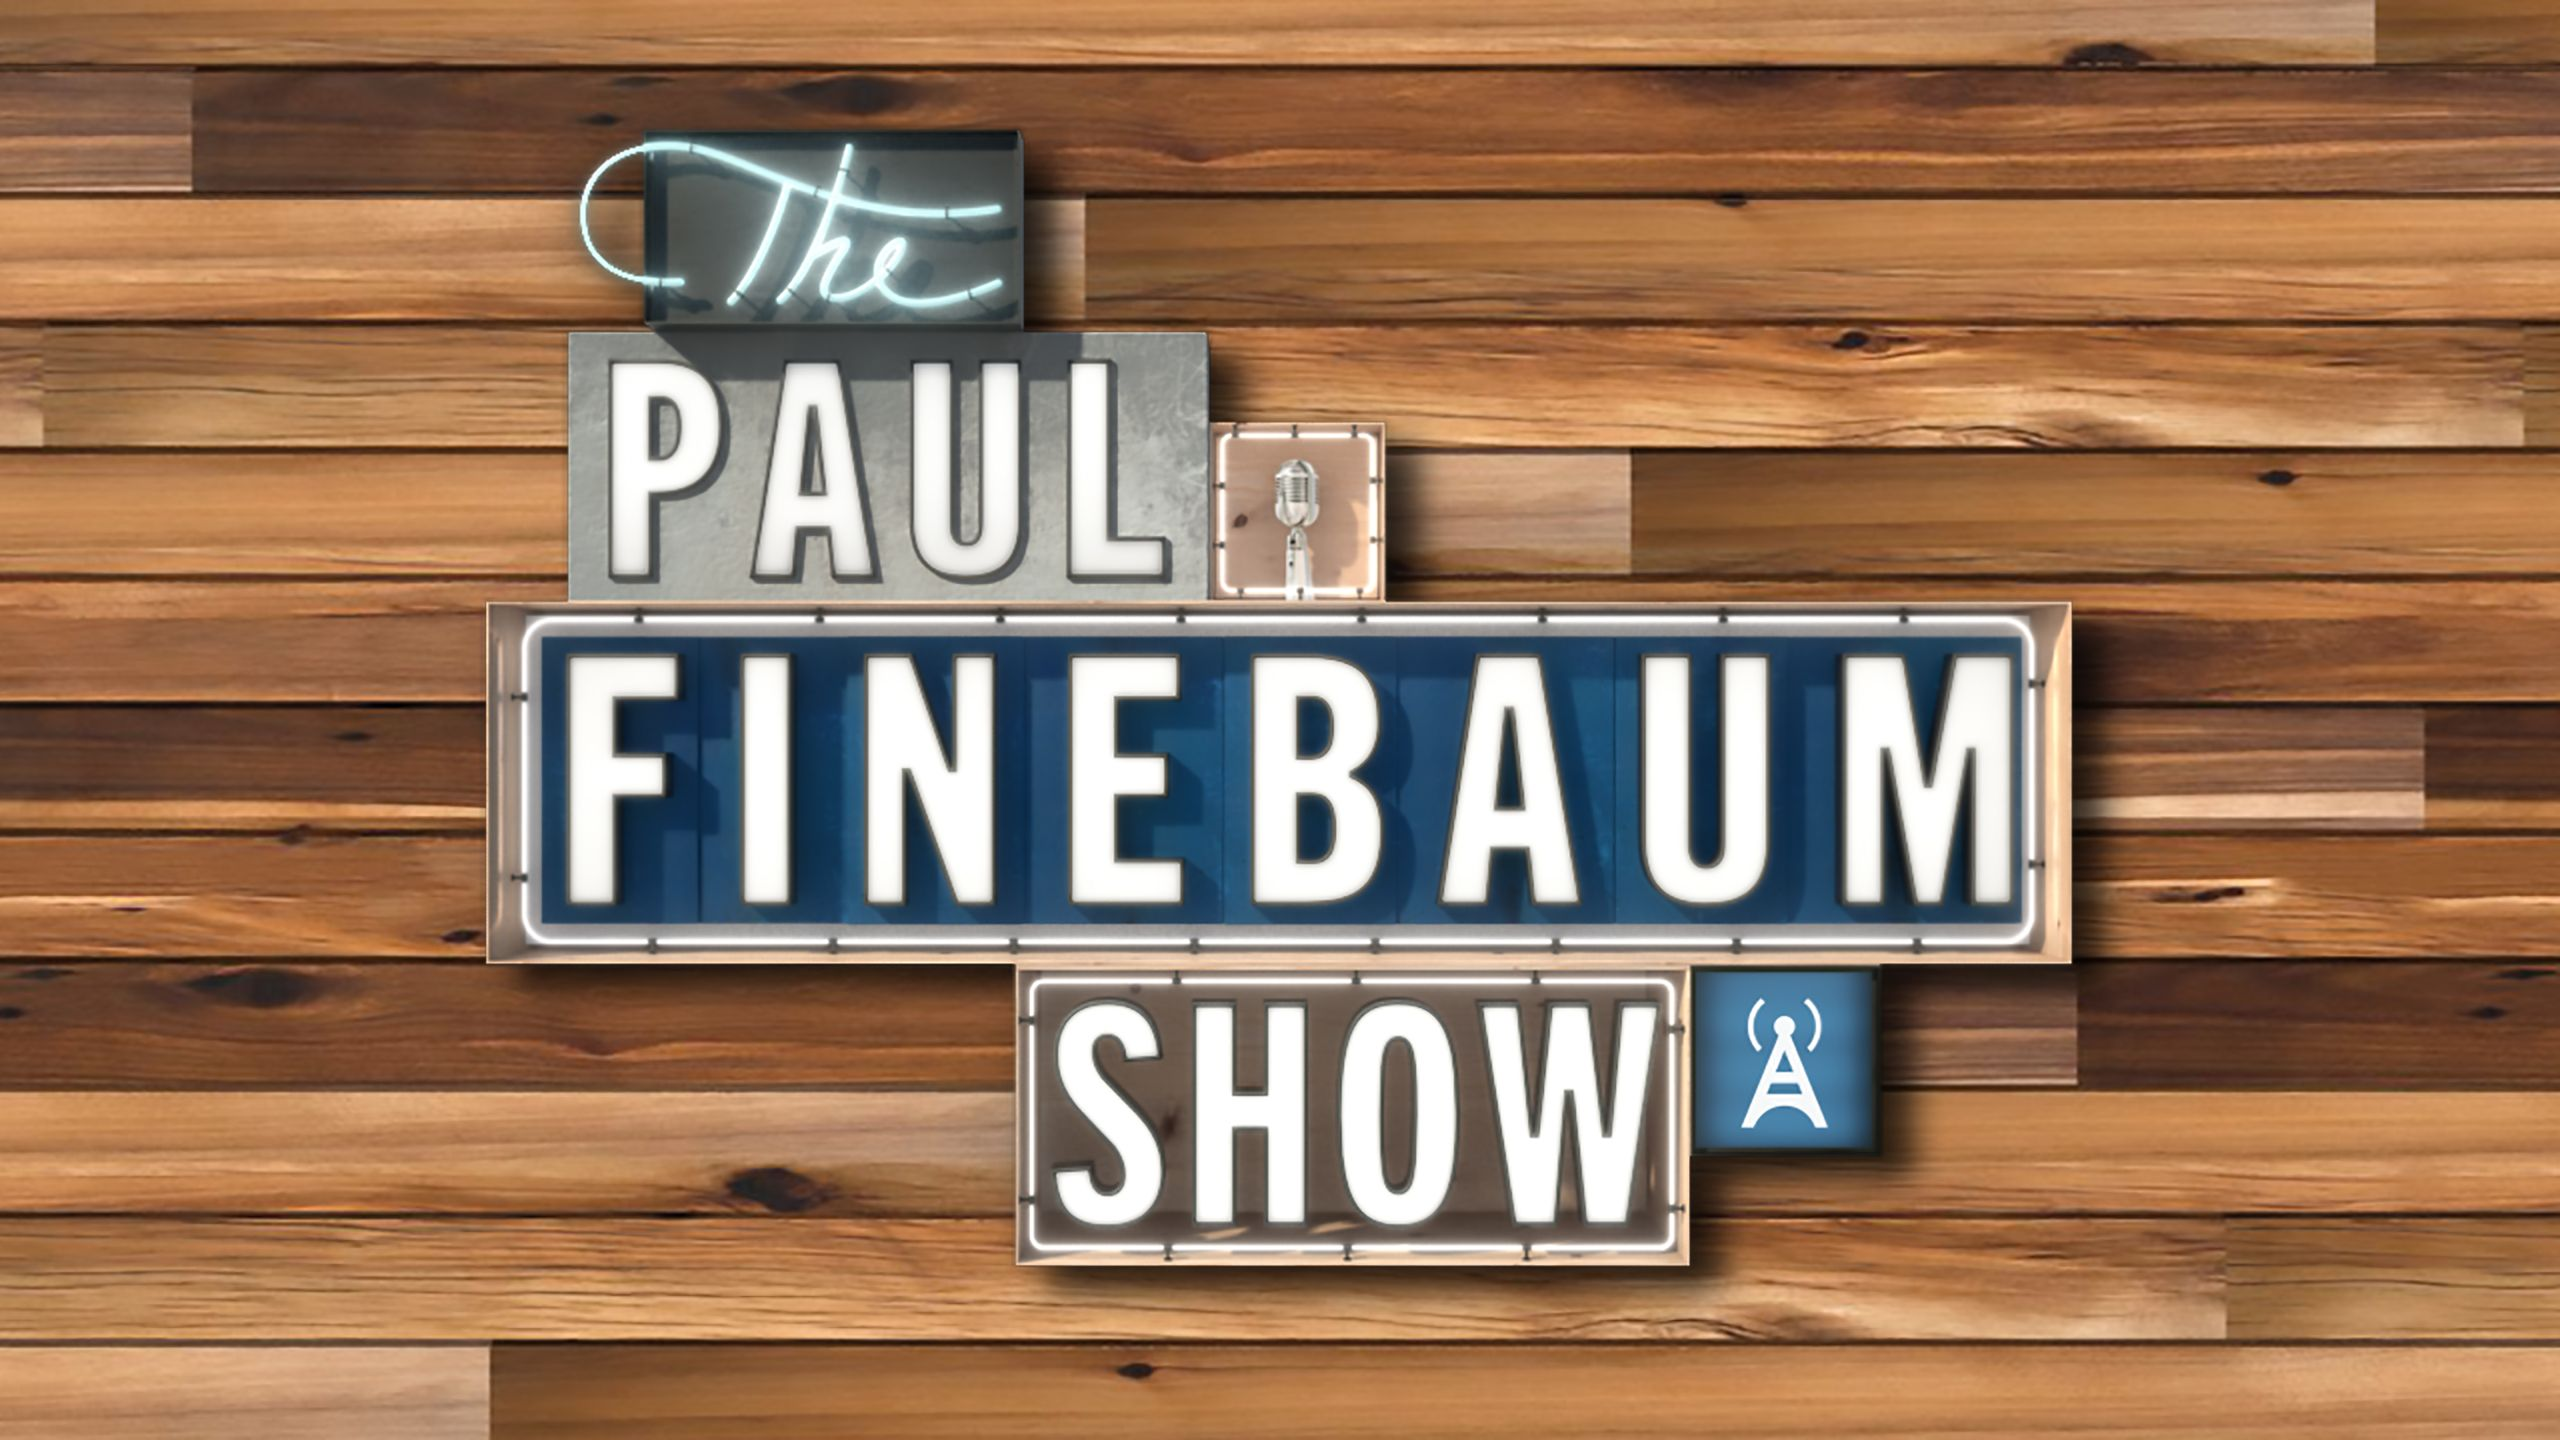 Fri, 12/15 - The Paul Finebaum Show